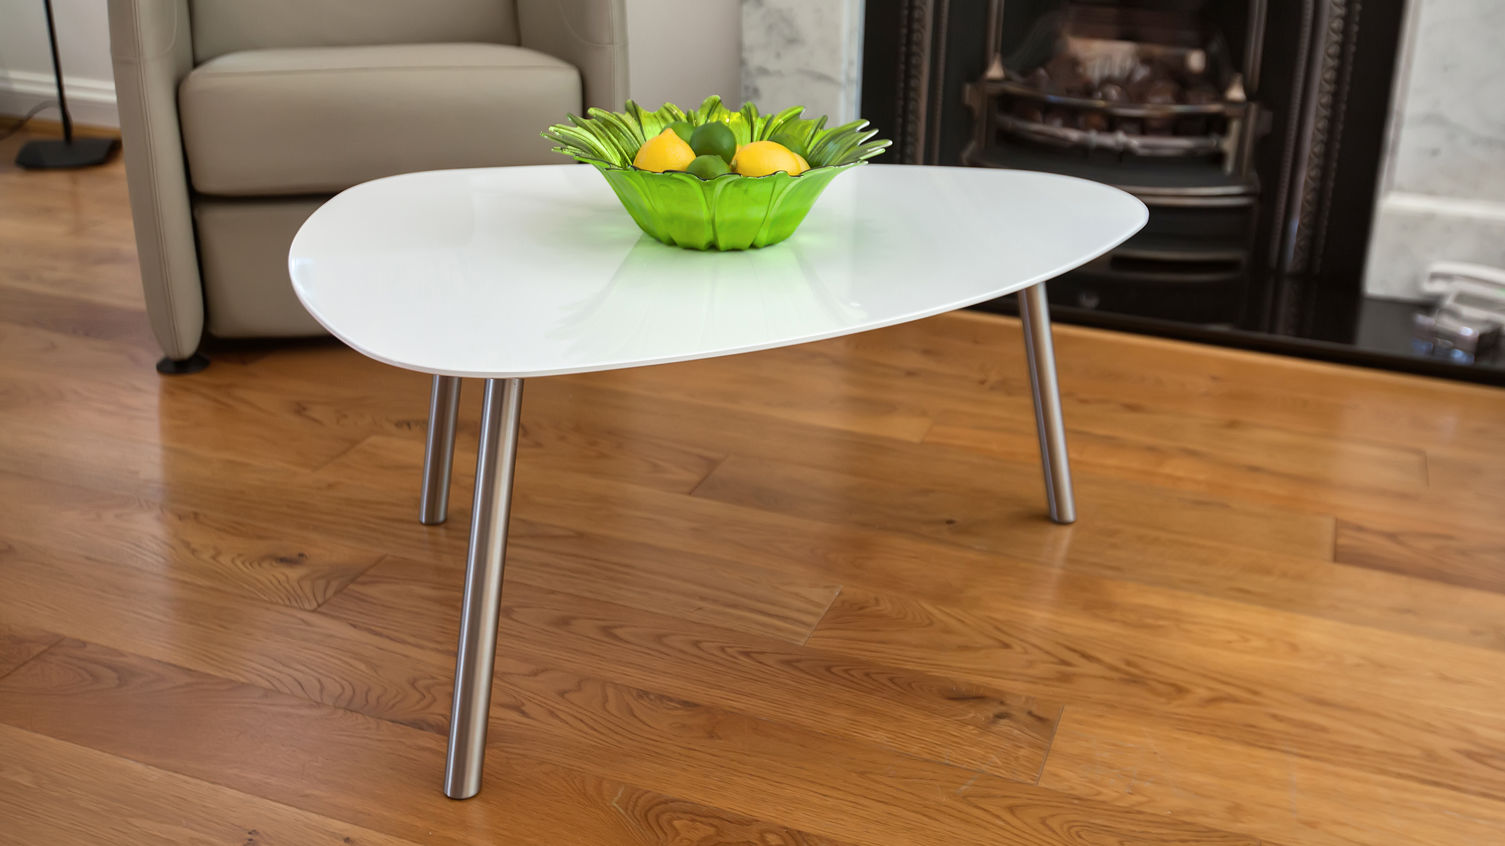 funky coffee tables, create more inviting look to your living room